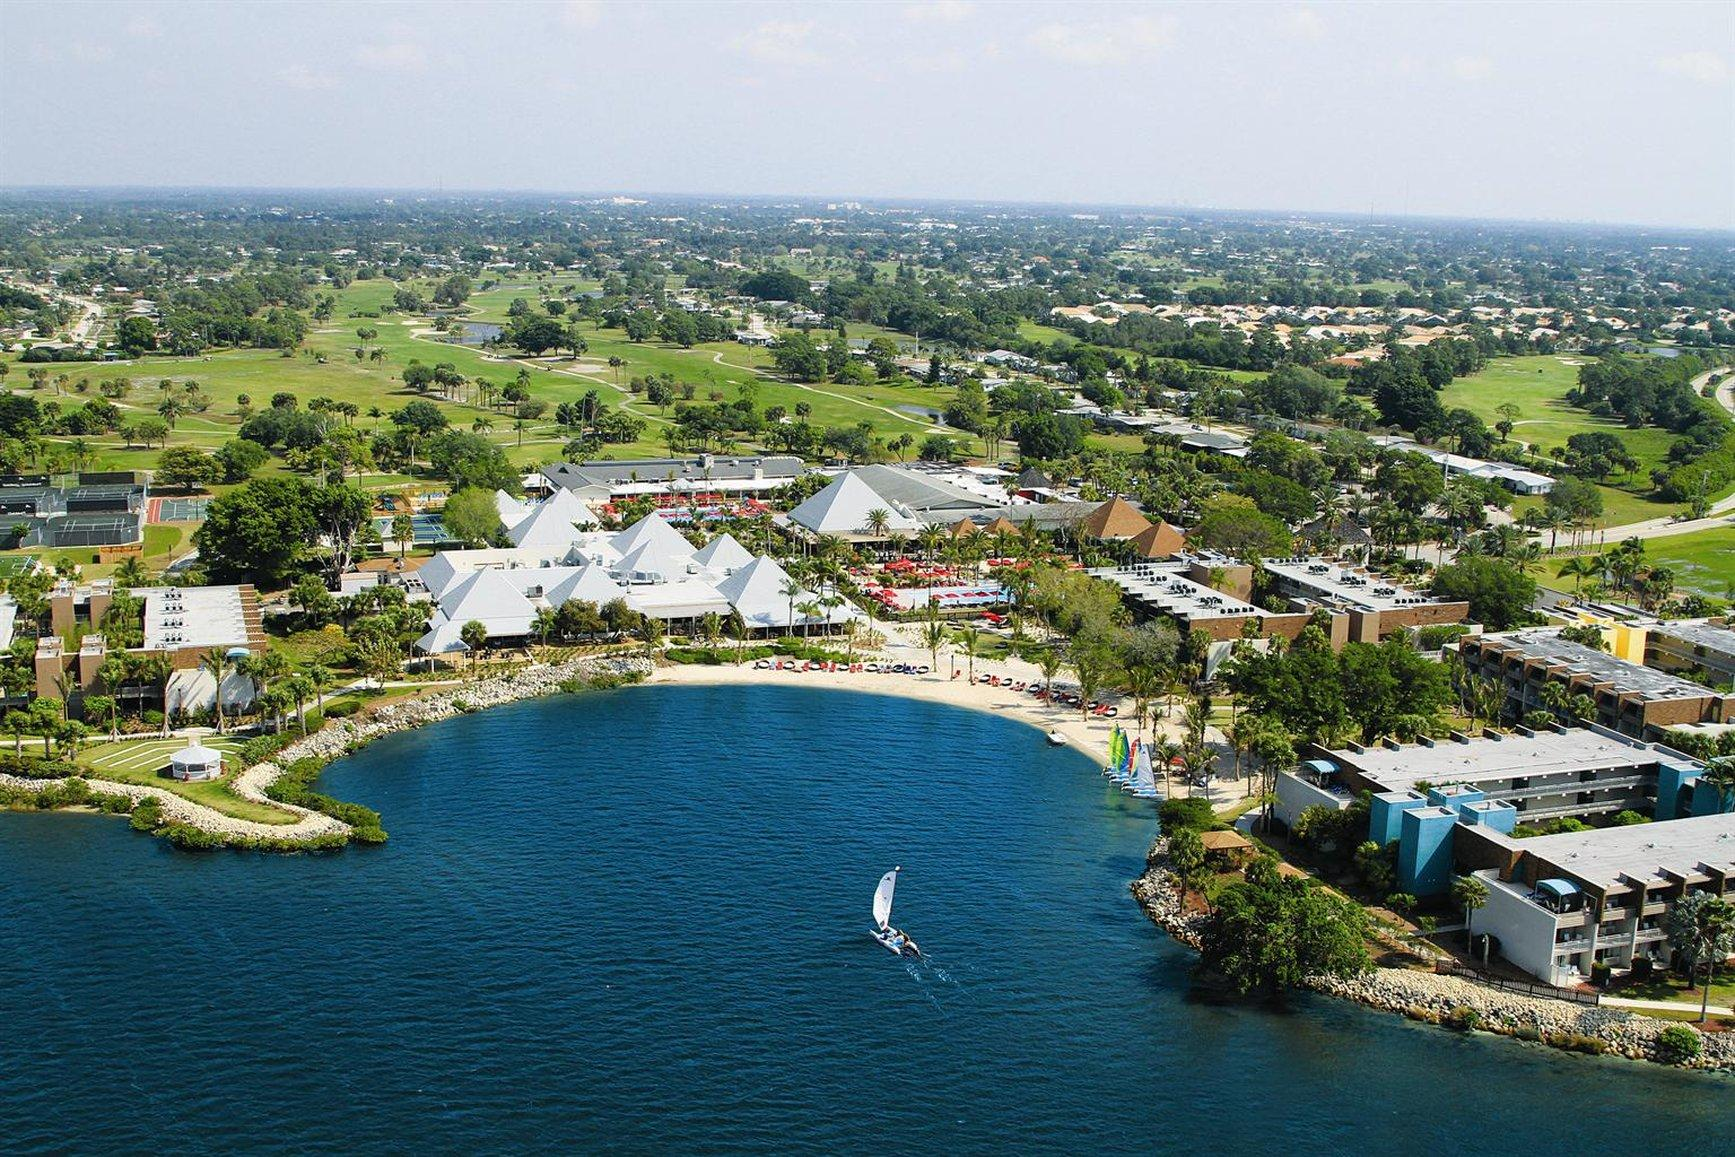 Club med sandpiper bay in port st. lucie, florida - all inclusive resort usa